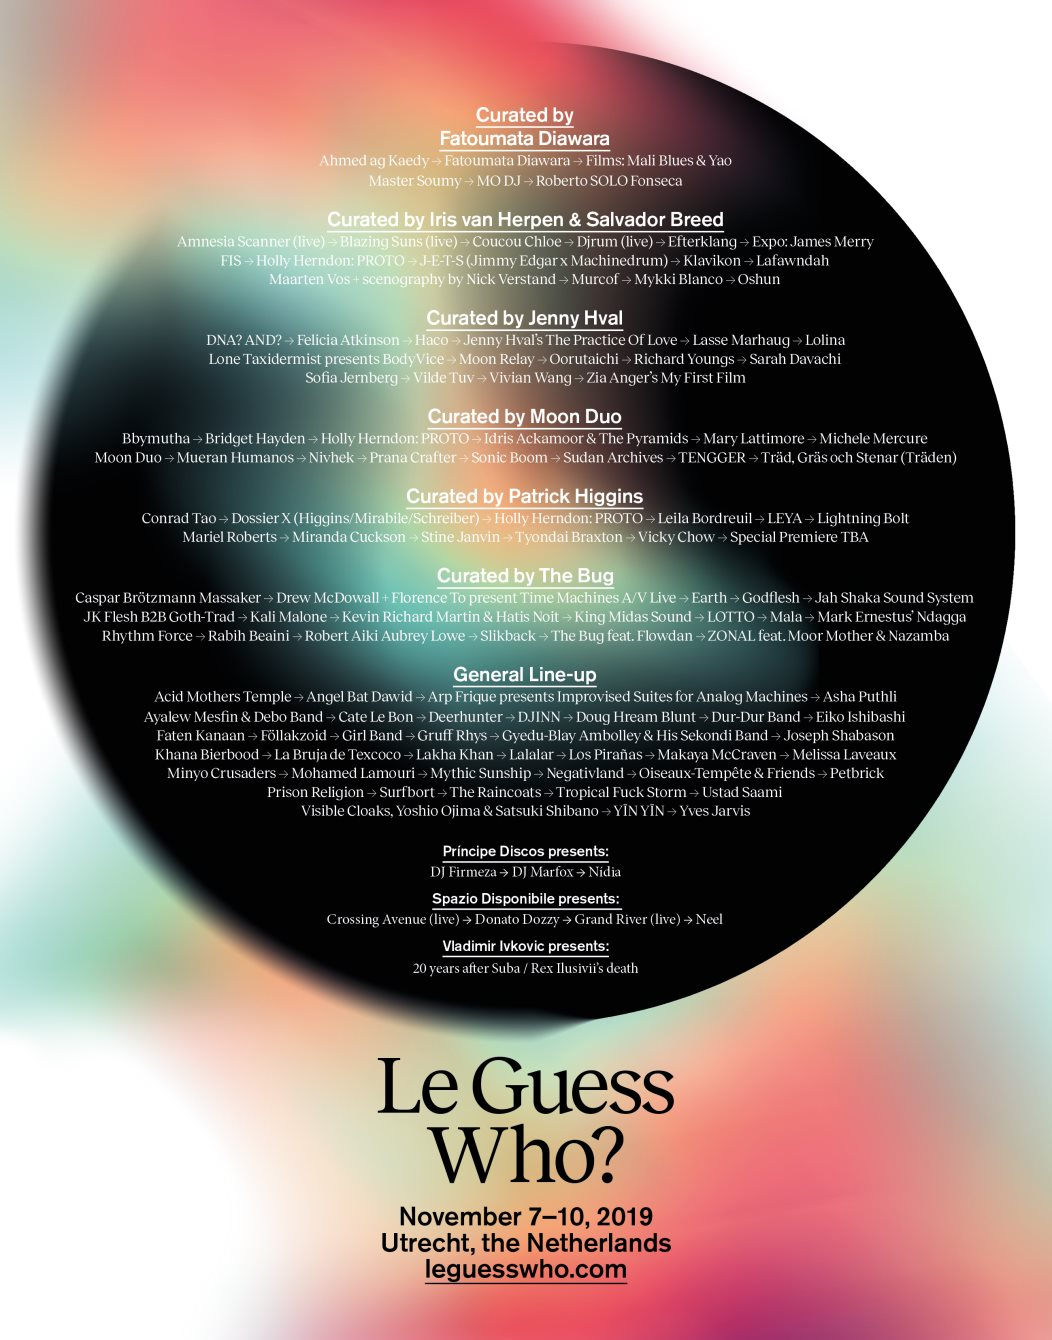 Le Guess Who? 2019 - Flyer front